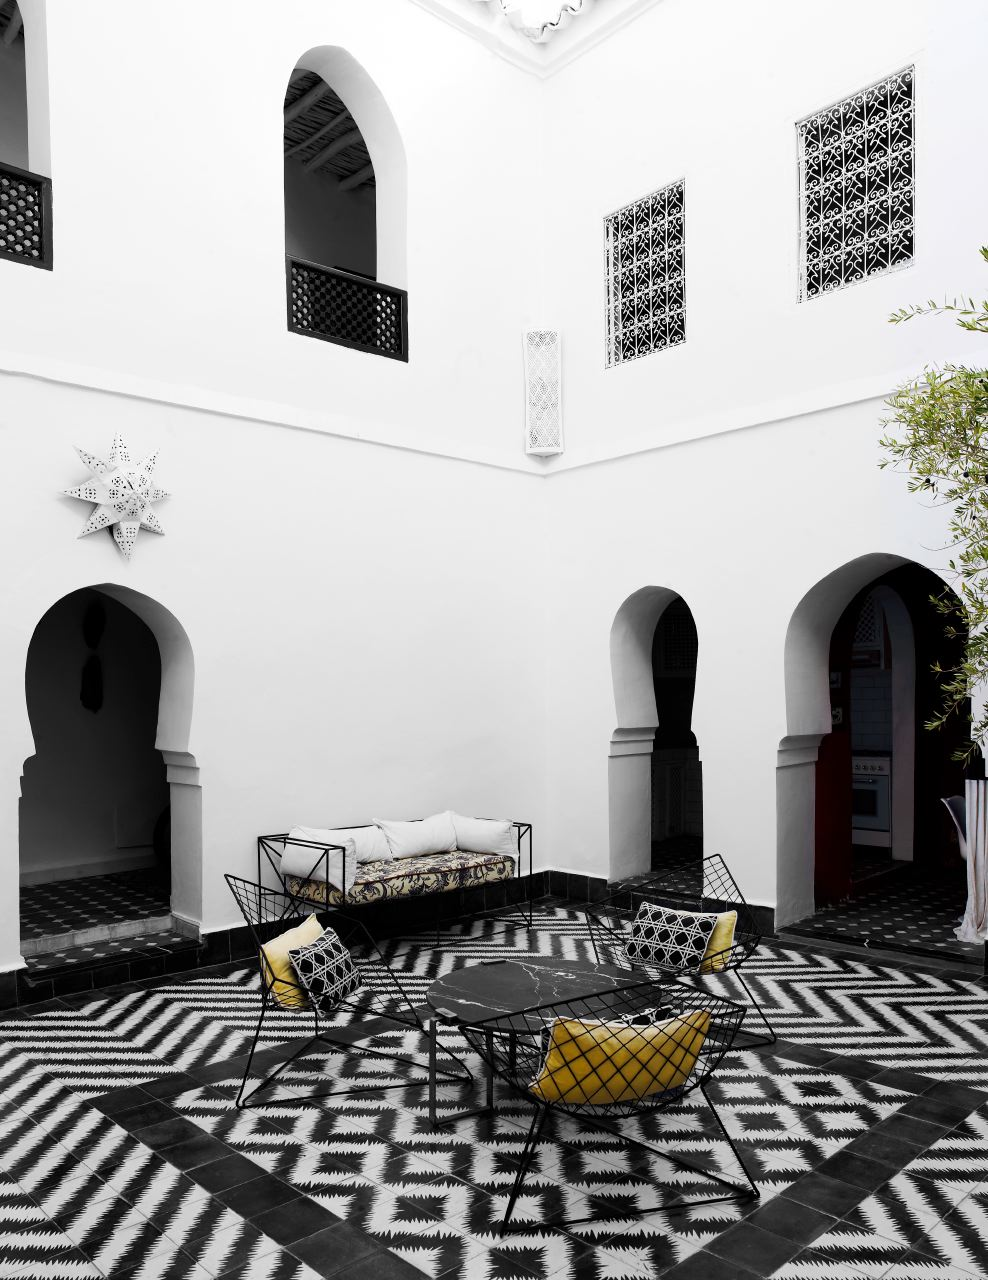 The exotically tiled courtyard of Samuel & Caitlin Dowe-Sands' 18th century house in Marrakesh. The Dowe-Sands run hand made Moroccan tile company,  Popham Design .